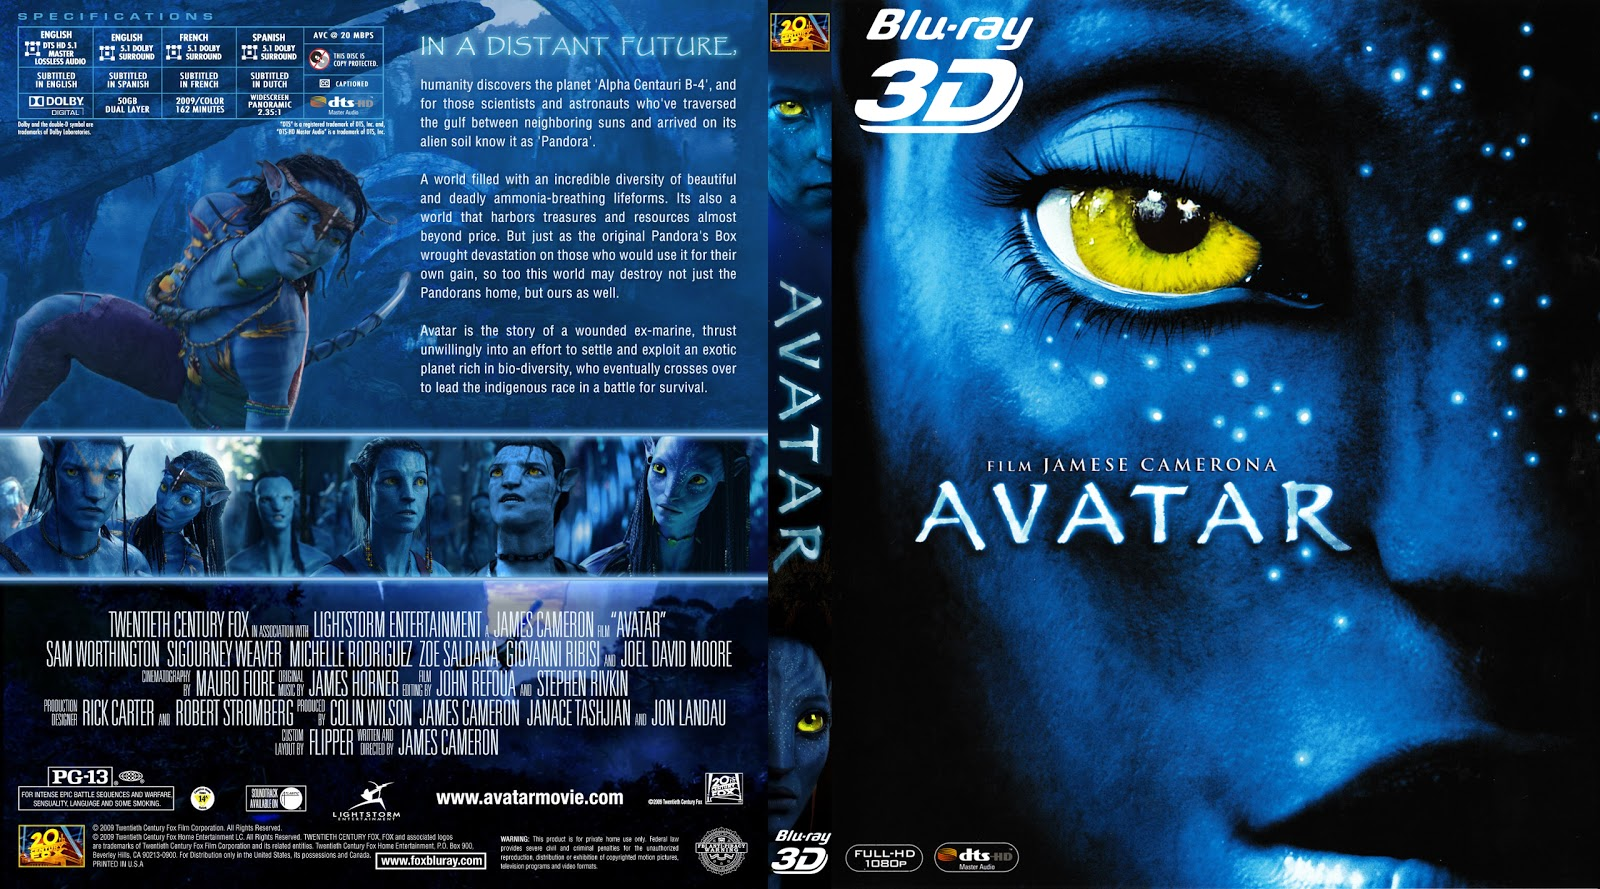 Avatar - Official Site